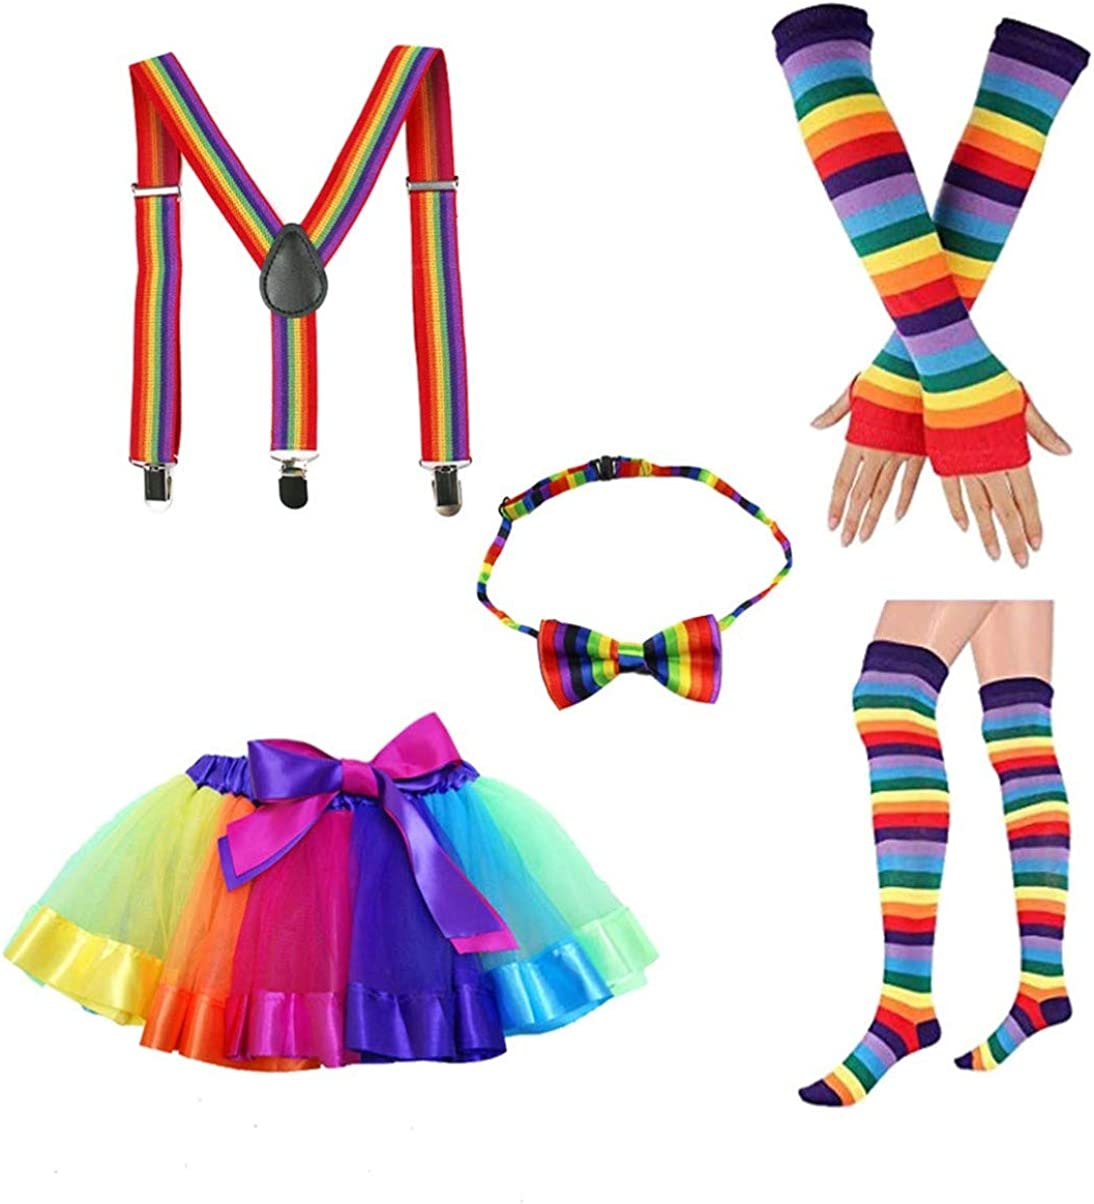 Amosfun Rainbow Tutu Skirt Long Gloves Stocking Bowknot Tie Suspenders Costumes Accessory Set for Children